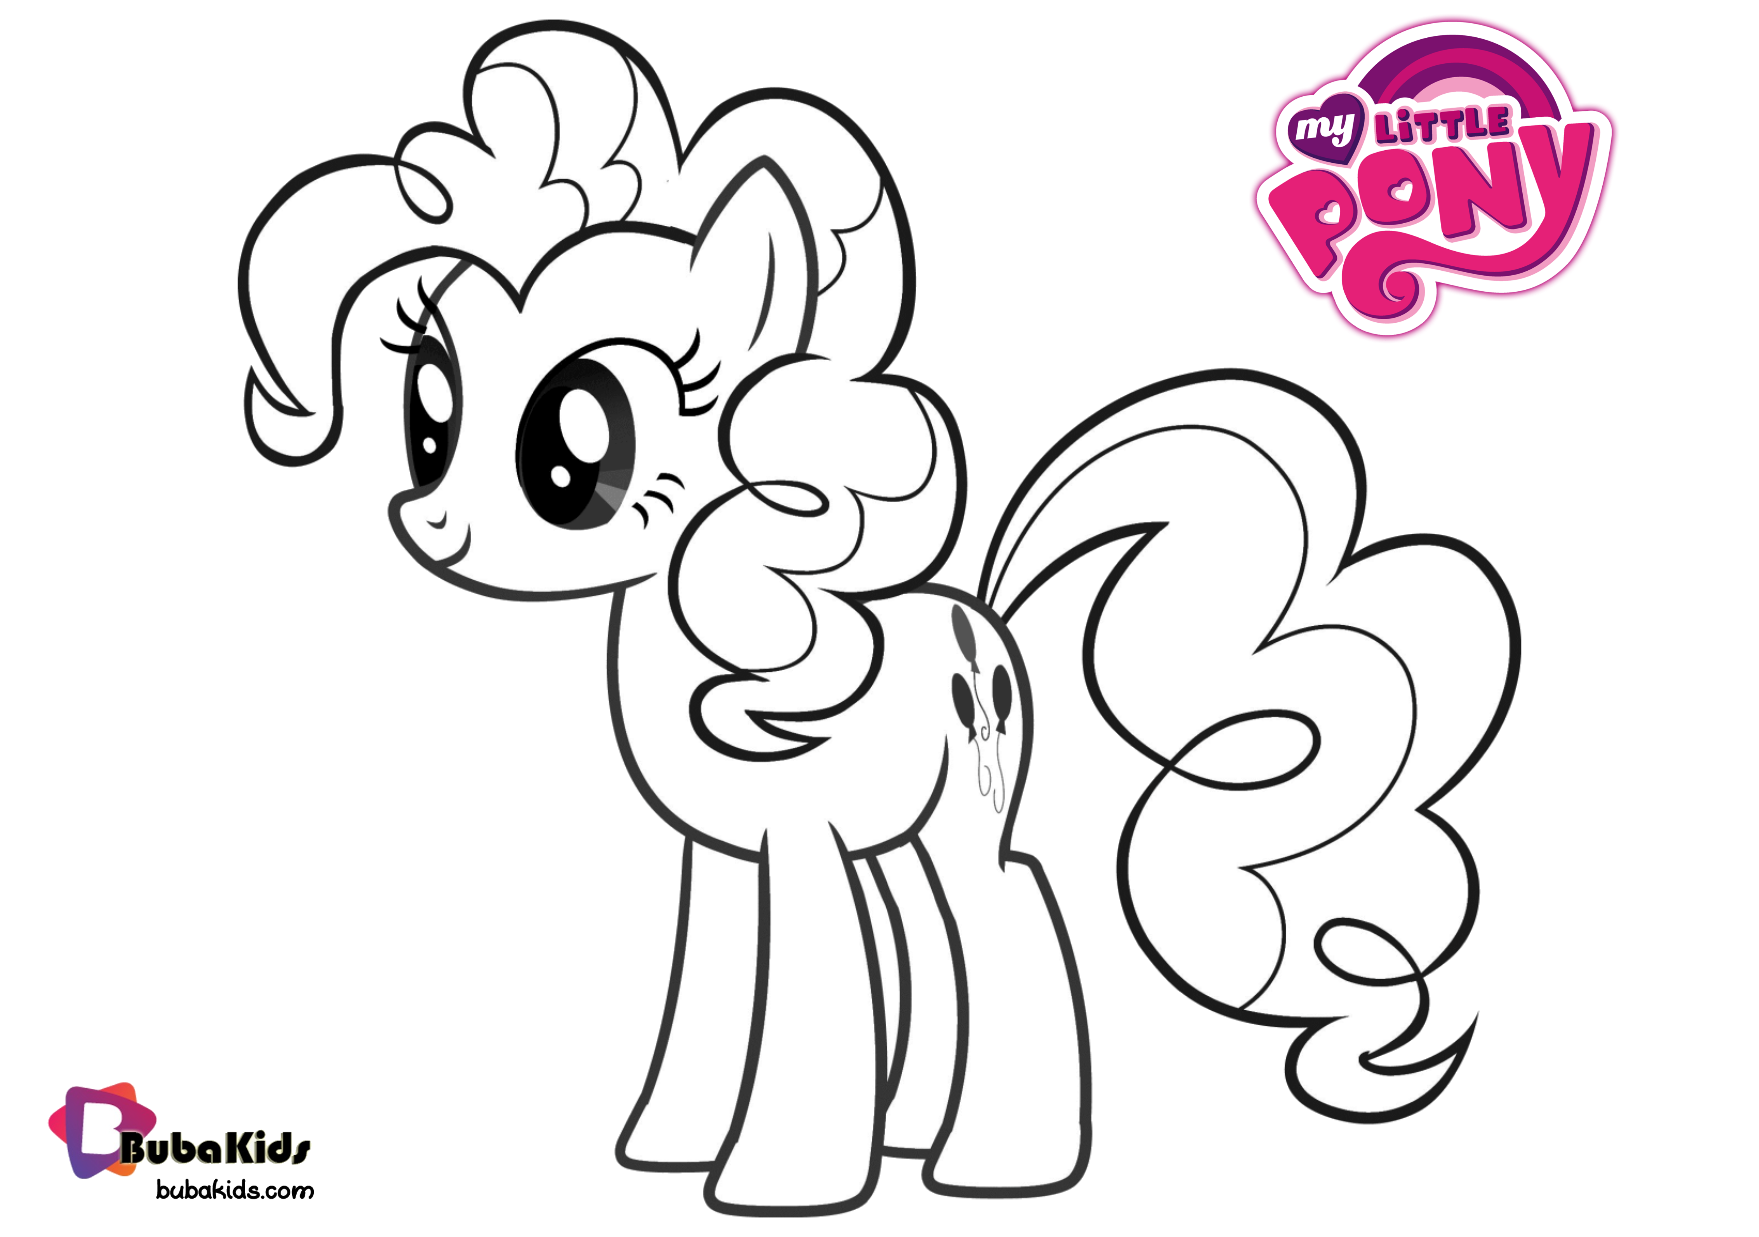 - Free Download My Little Pony Coloring Page. In 2020 My Little